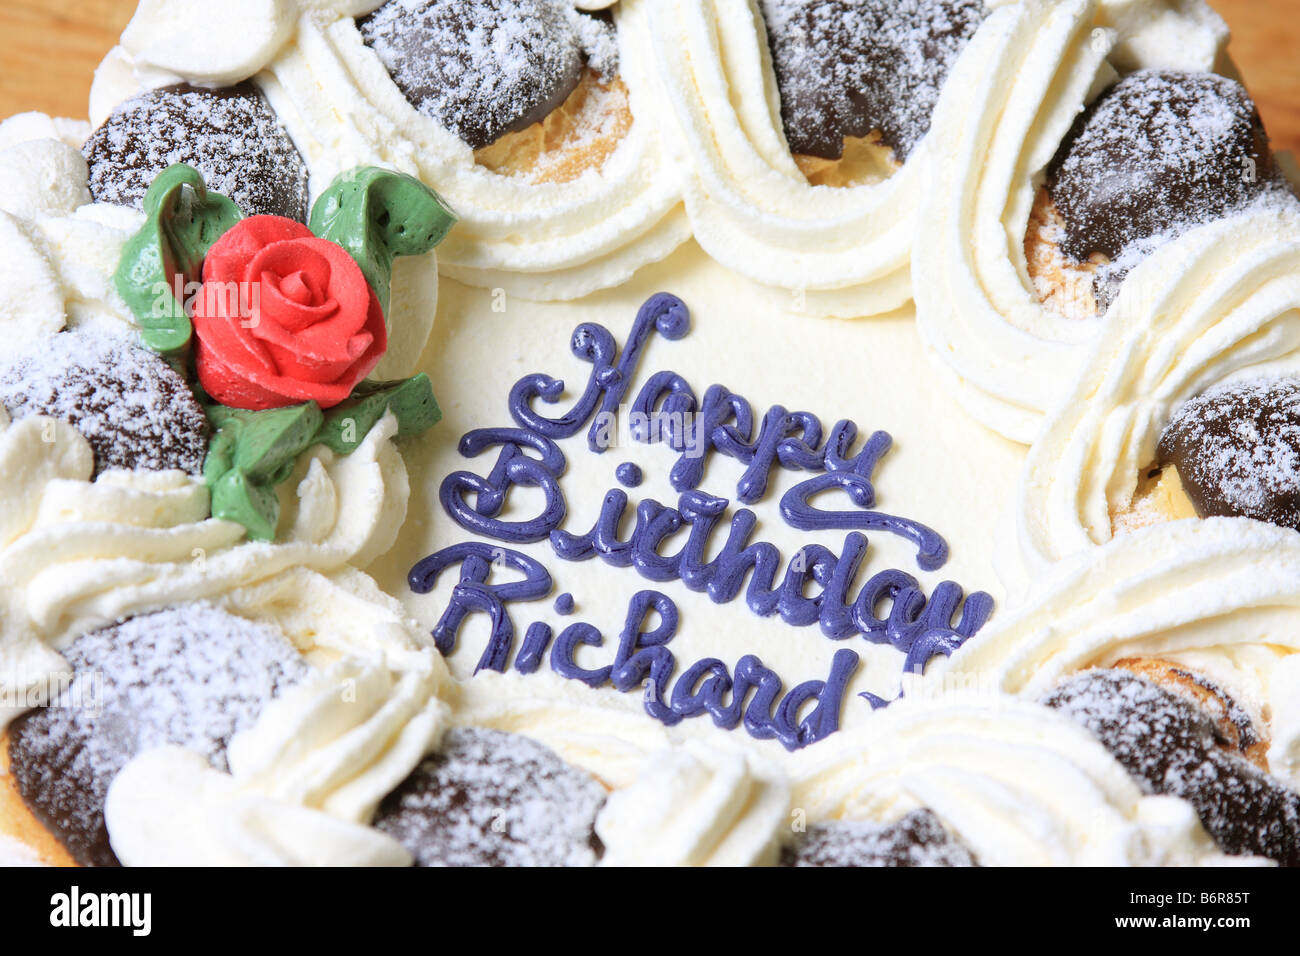 Birthday Cake Baked In A New Westminster Canada Bakery Stock Photo